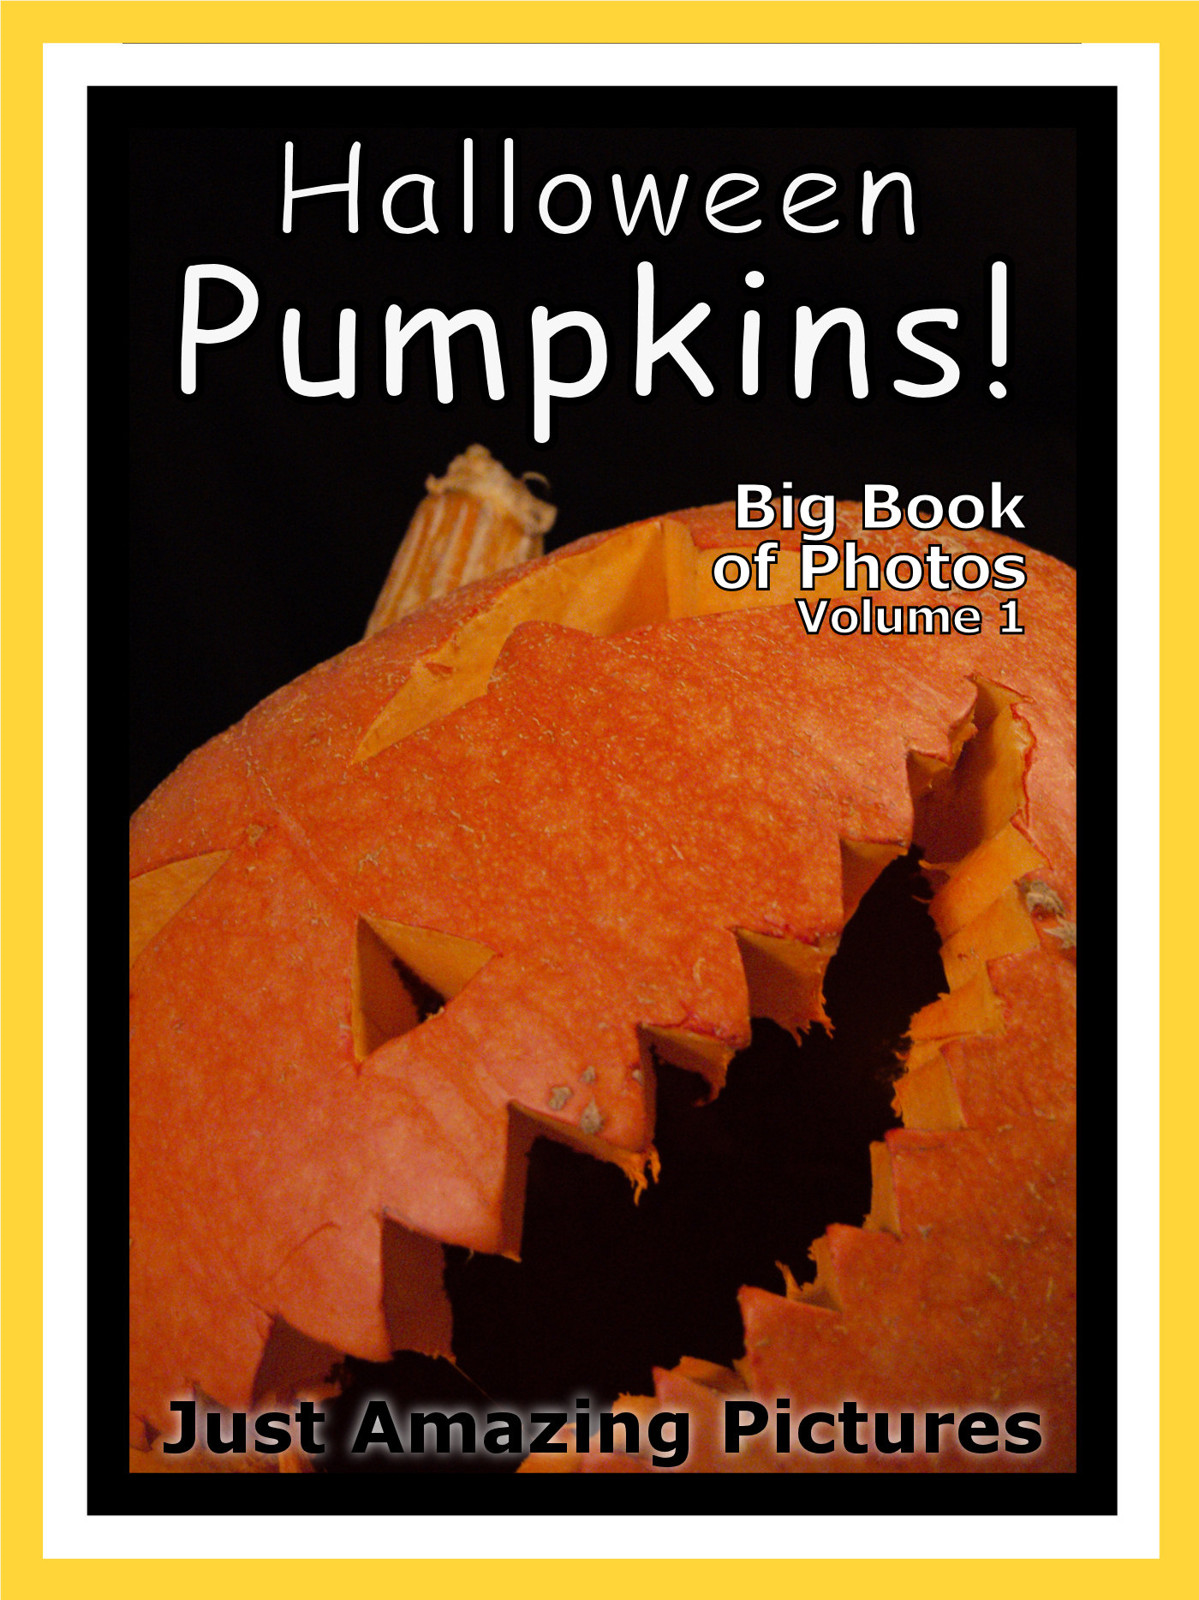 Just Halloween Pumpkin Photos! Big Book of Photographs & Pictures of Pumpkins, Vol. 1